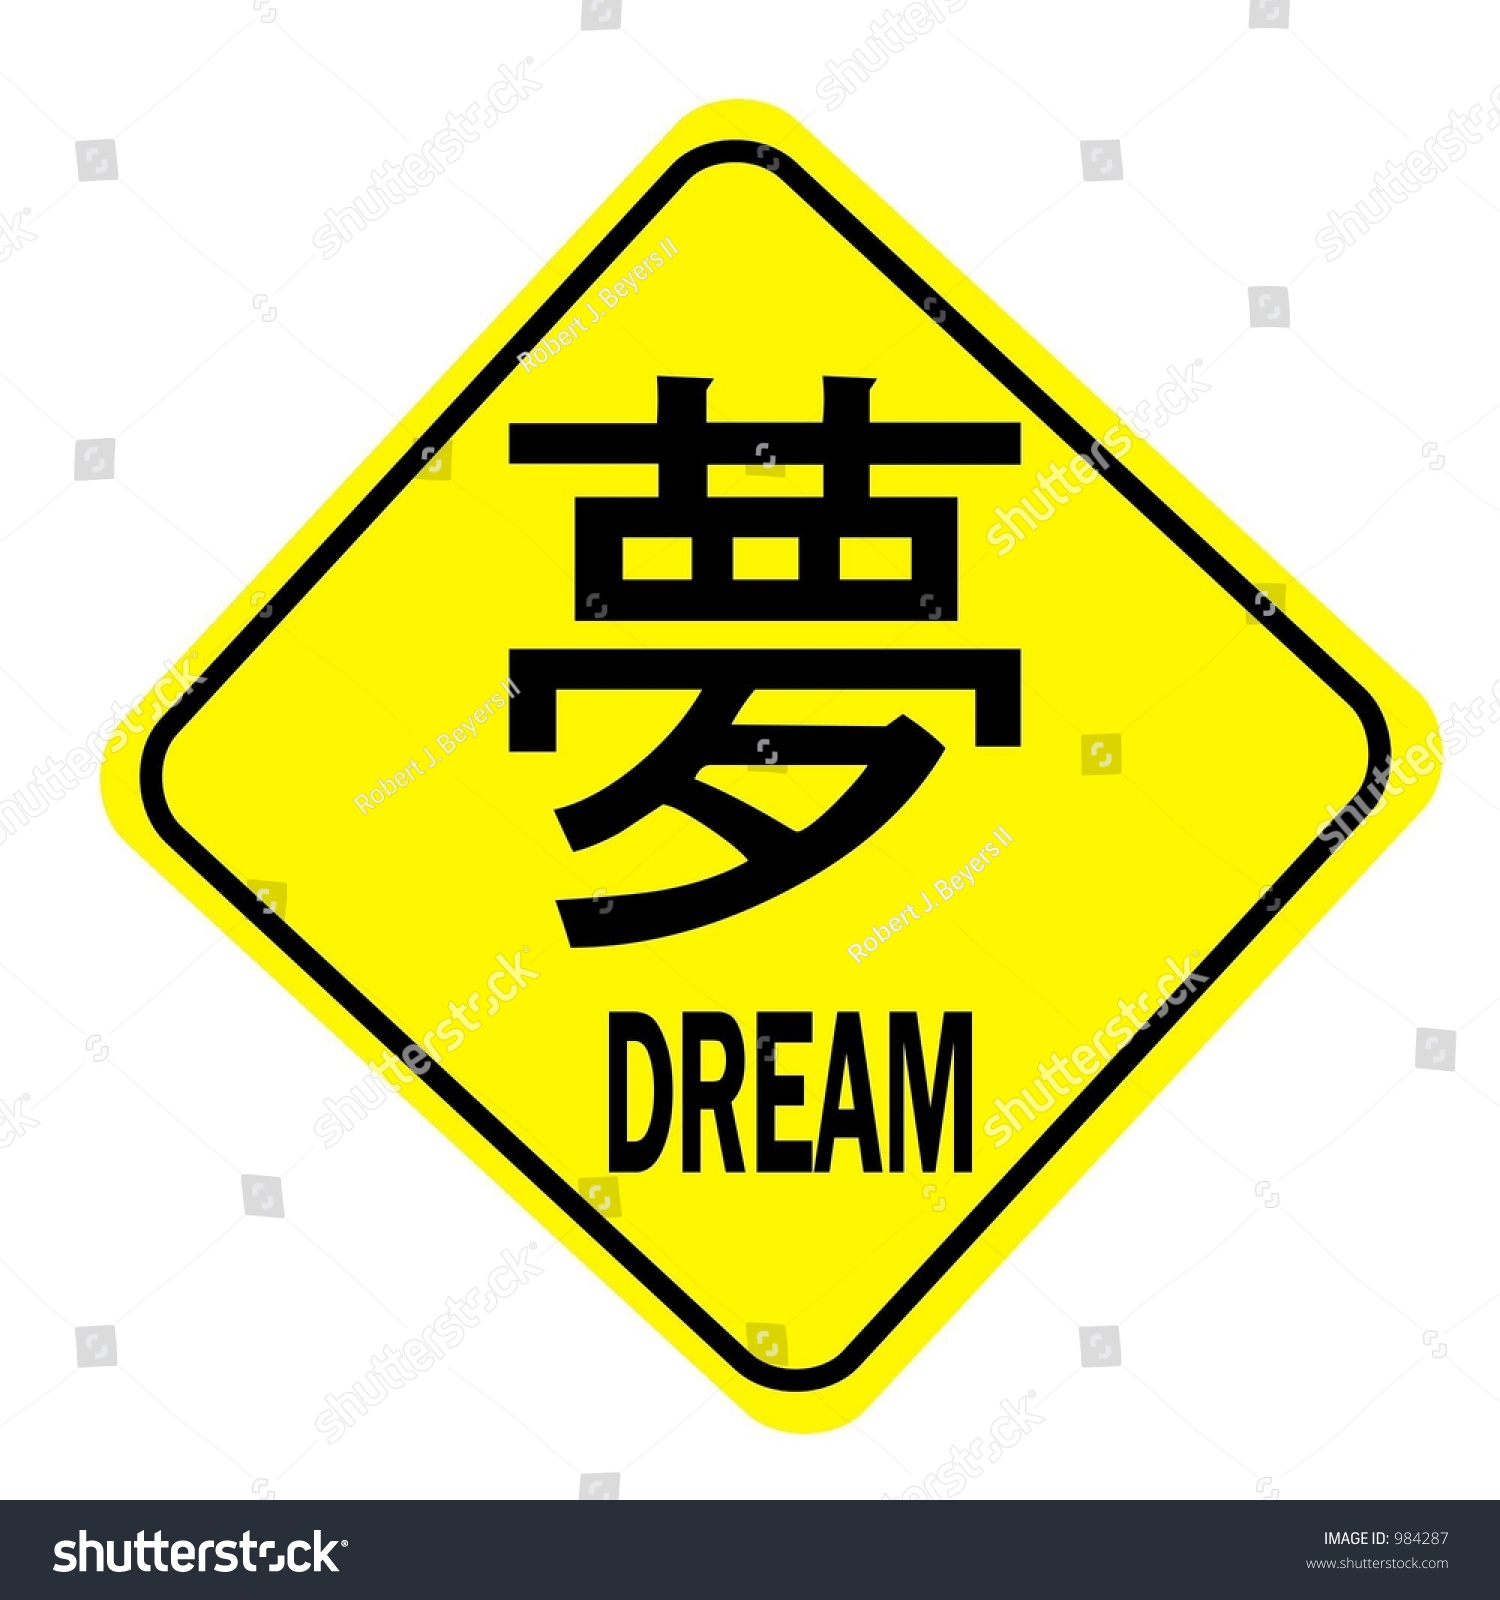 Symbol for dream image collections symbol and sign ideas dream message japanese symbol dream on stock illustration 984287 dream message with a japanese symbol for buycottarizona